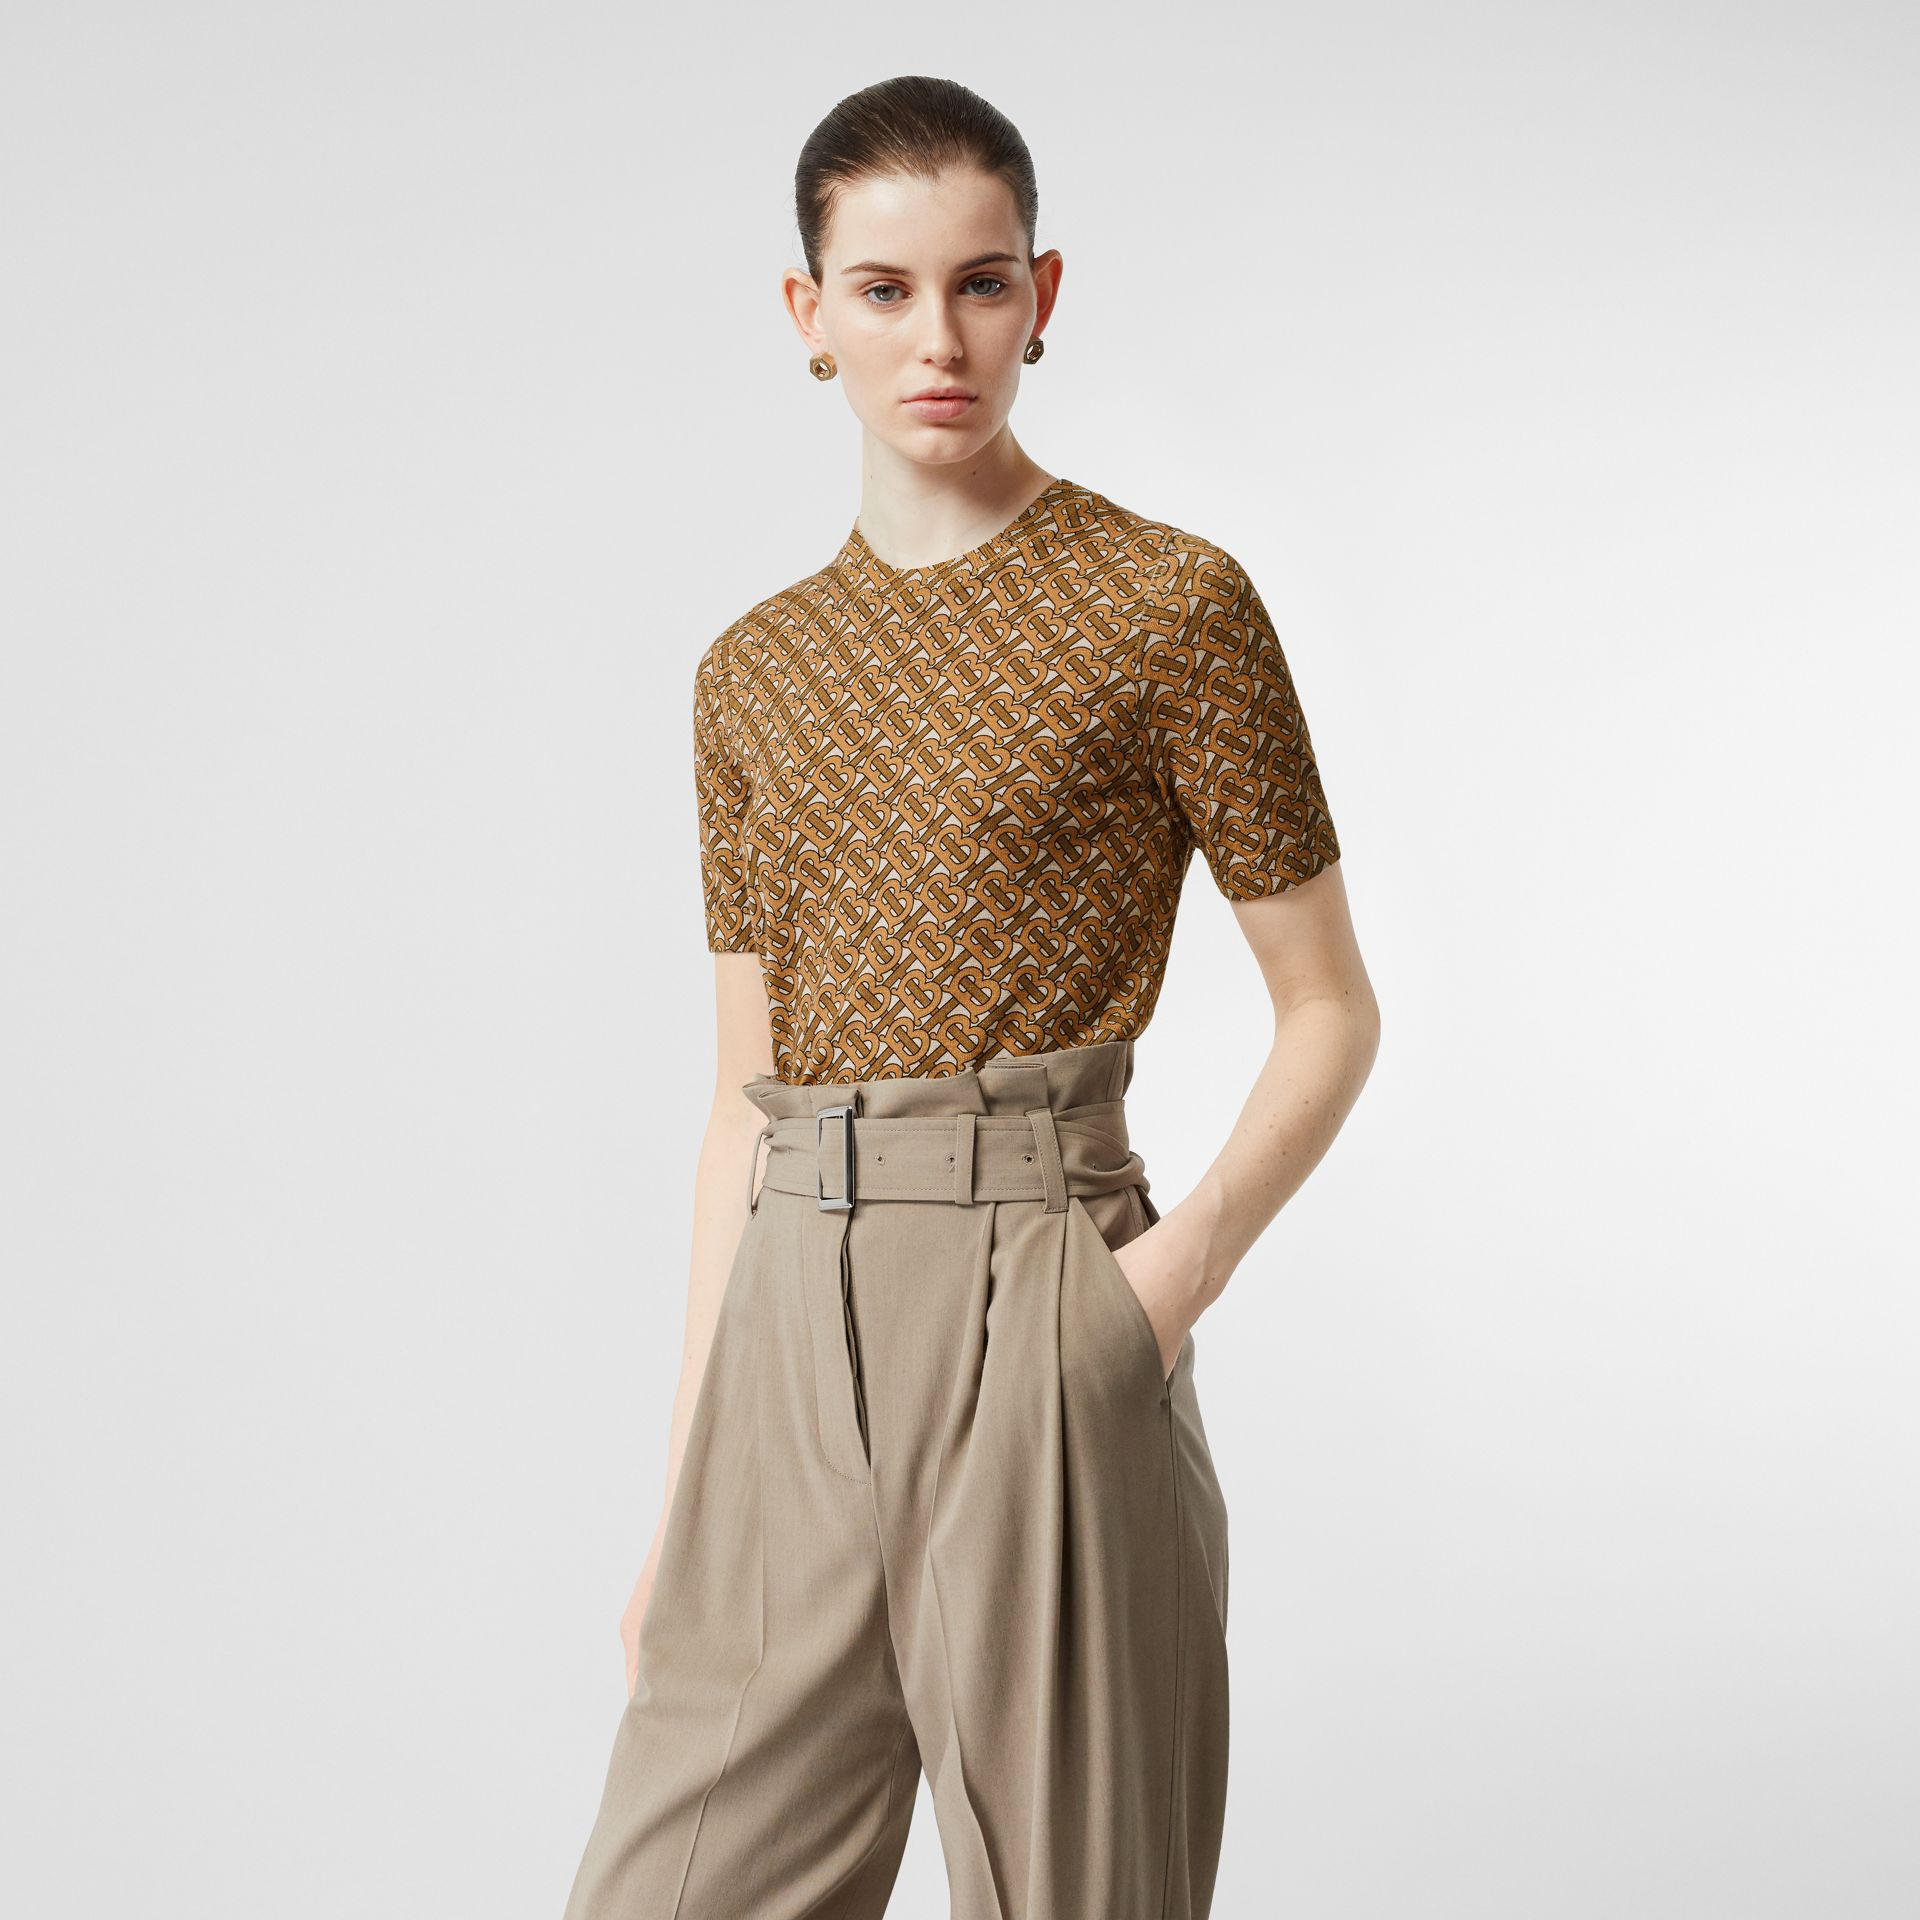 Monogram Print Merino Wool Top in Beige - Women | Burberry Singapore - gallery image 4